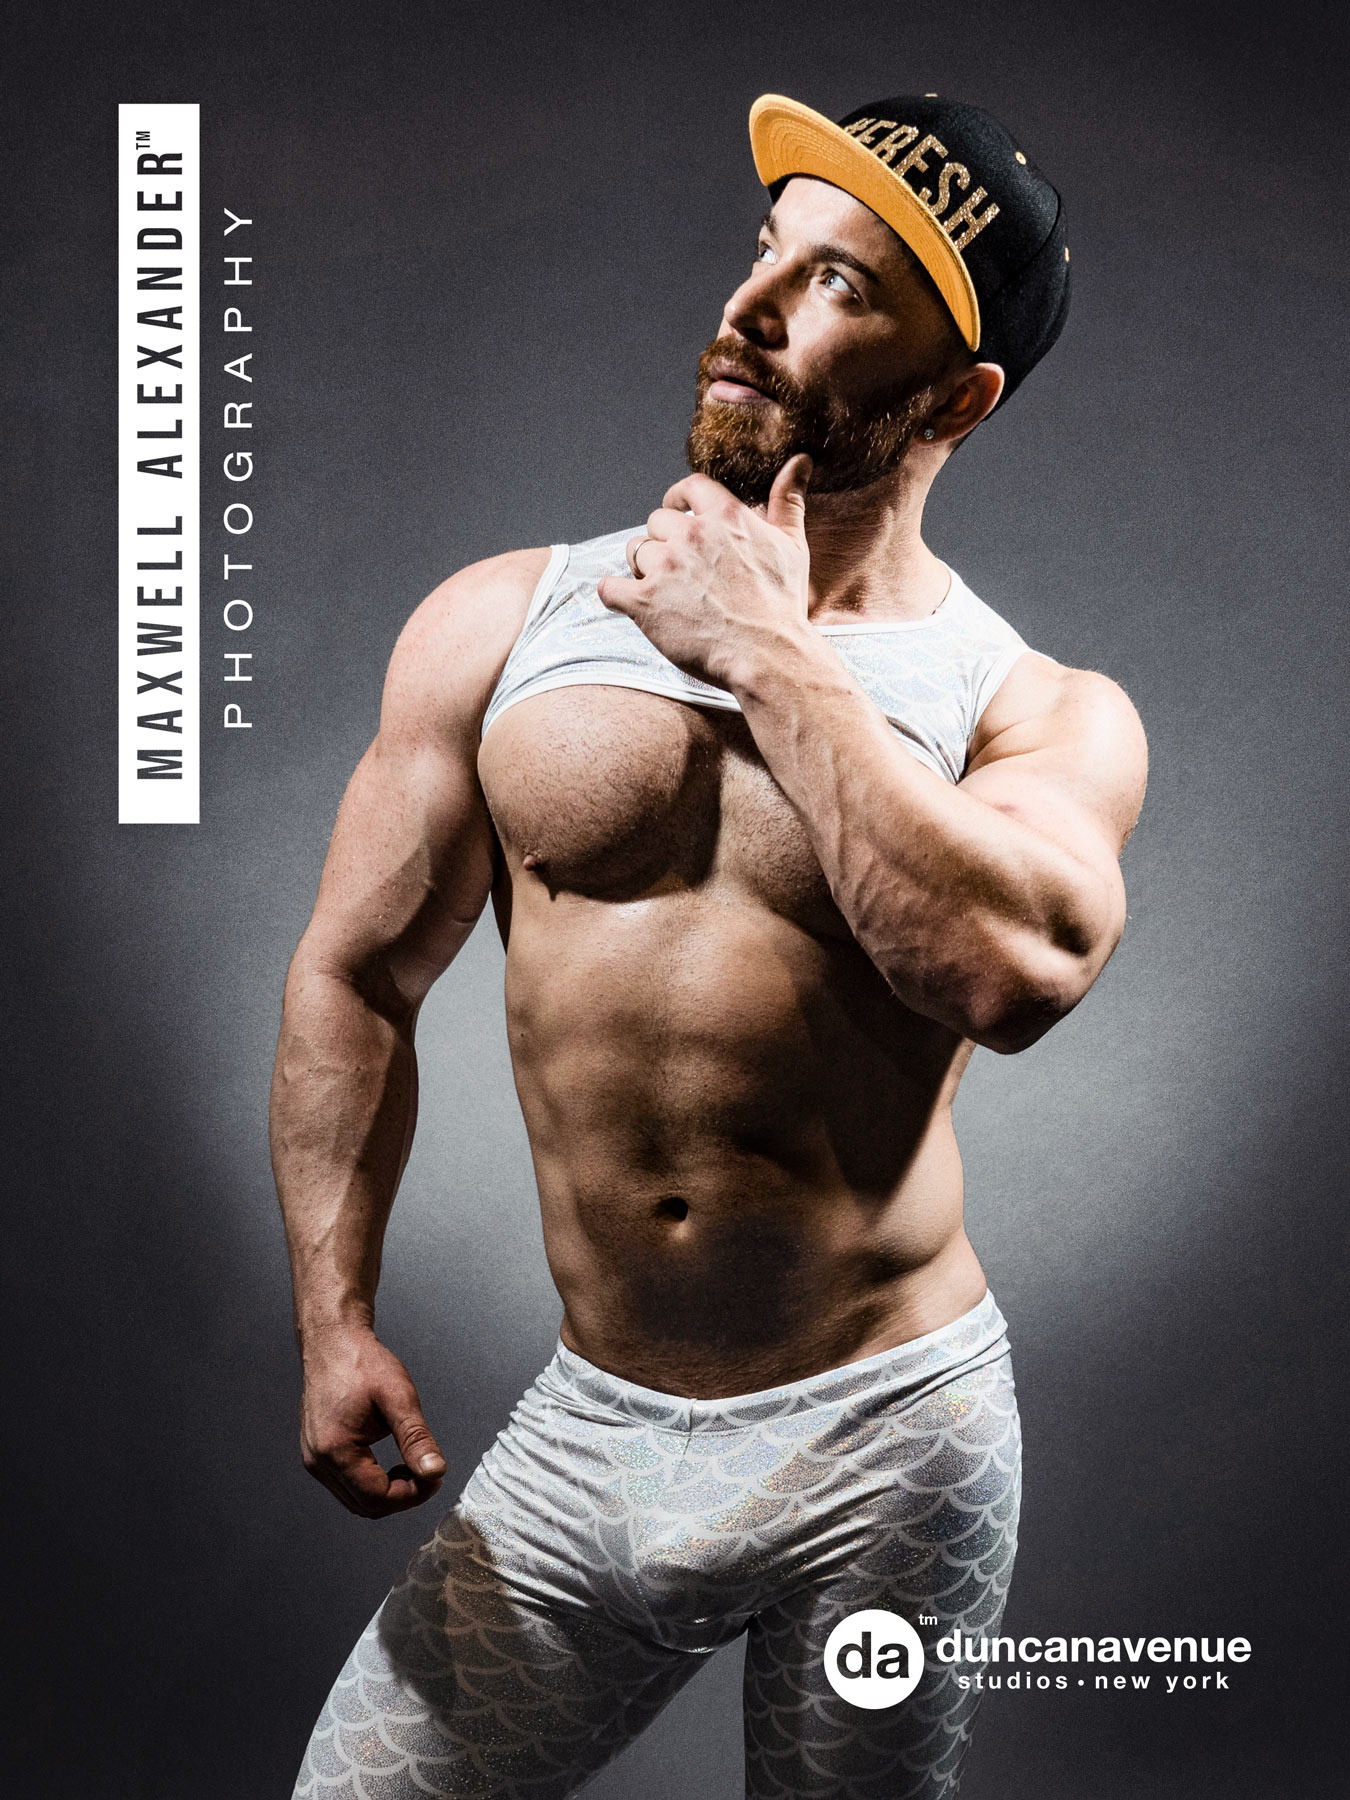 Fitness and Bodybuilding Photography by Maxwell L. Alexander – Best Gay OnlyFans Creator – Best OnlyFans and Boudoir Photographer